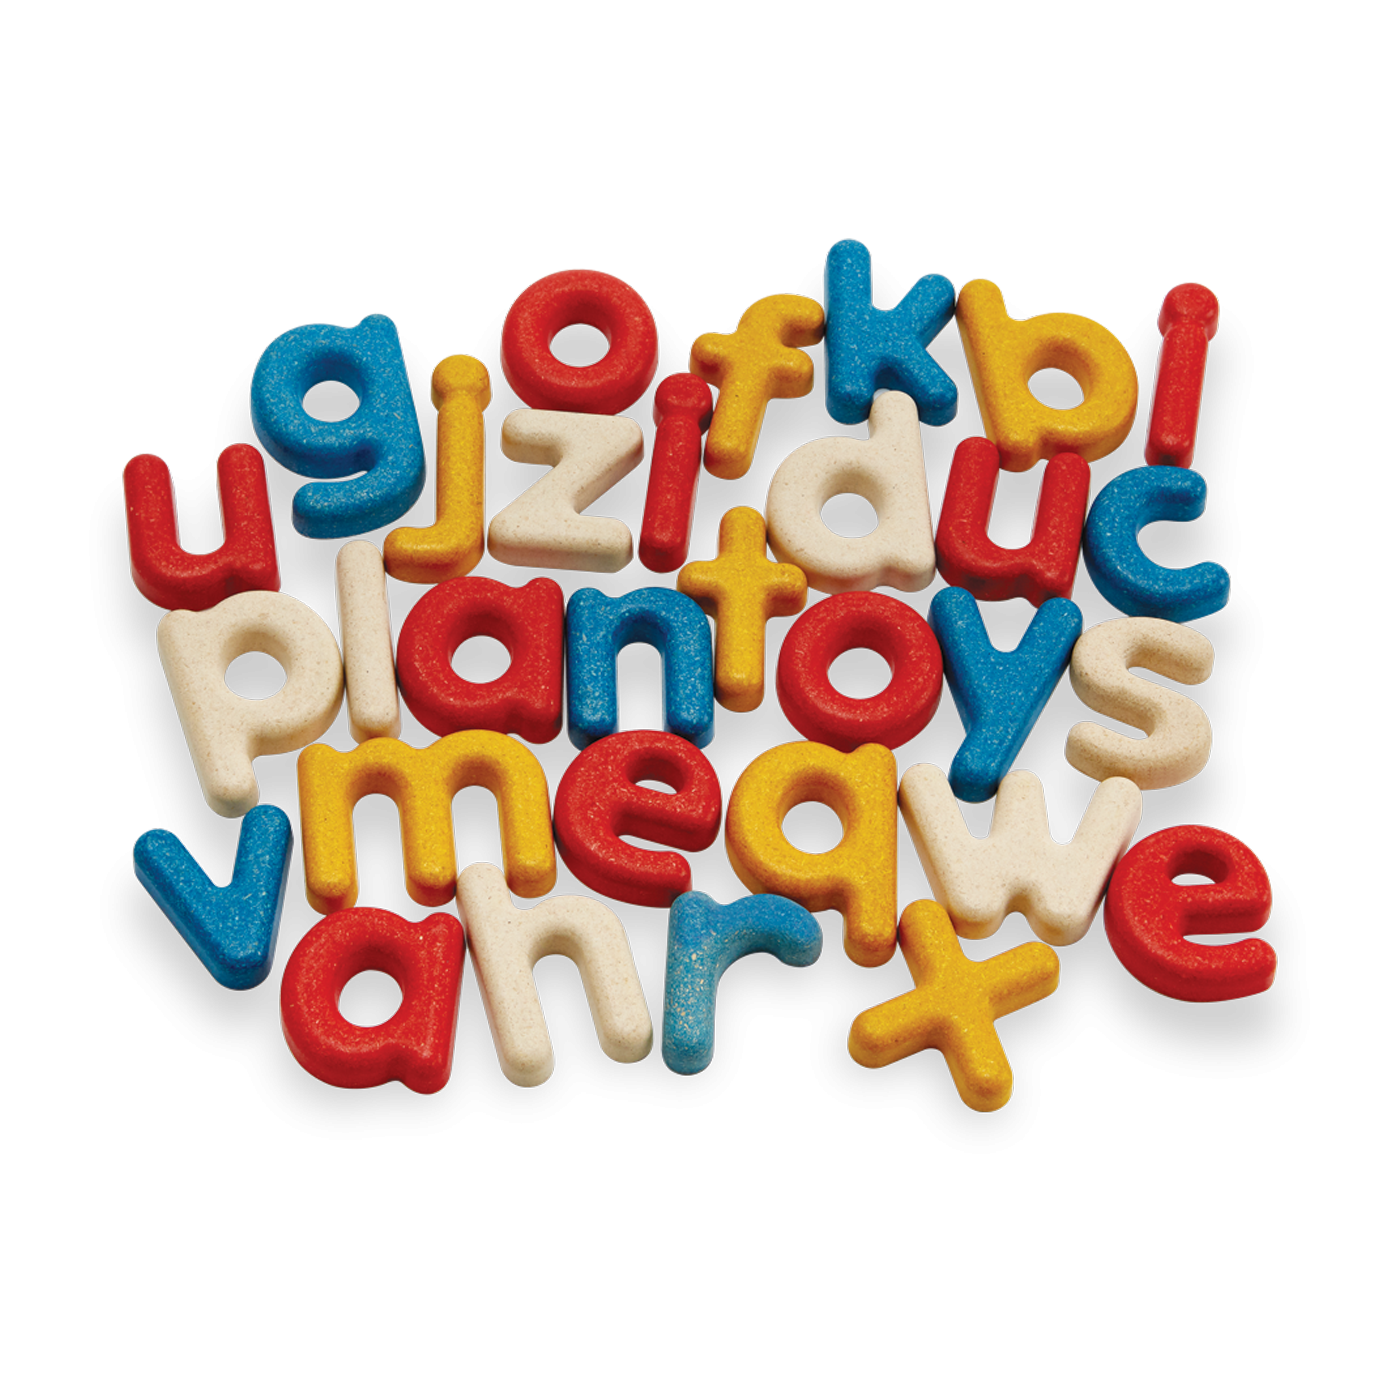 5407_PlanToys_Lower_Case_Alphabet_Learning_and_Education_2yrs_Language_and_Communications_Coordination_Tactile_Concentration_Creative_Logical_Wooden_toys_Education_toys_Safety_Toys_Non-toxic_0.png